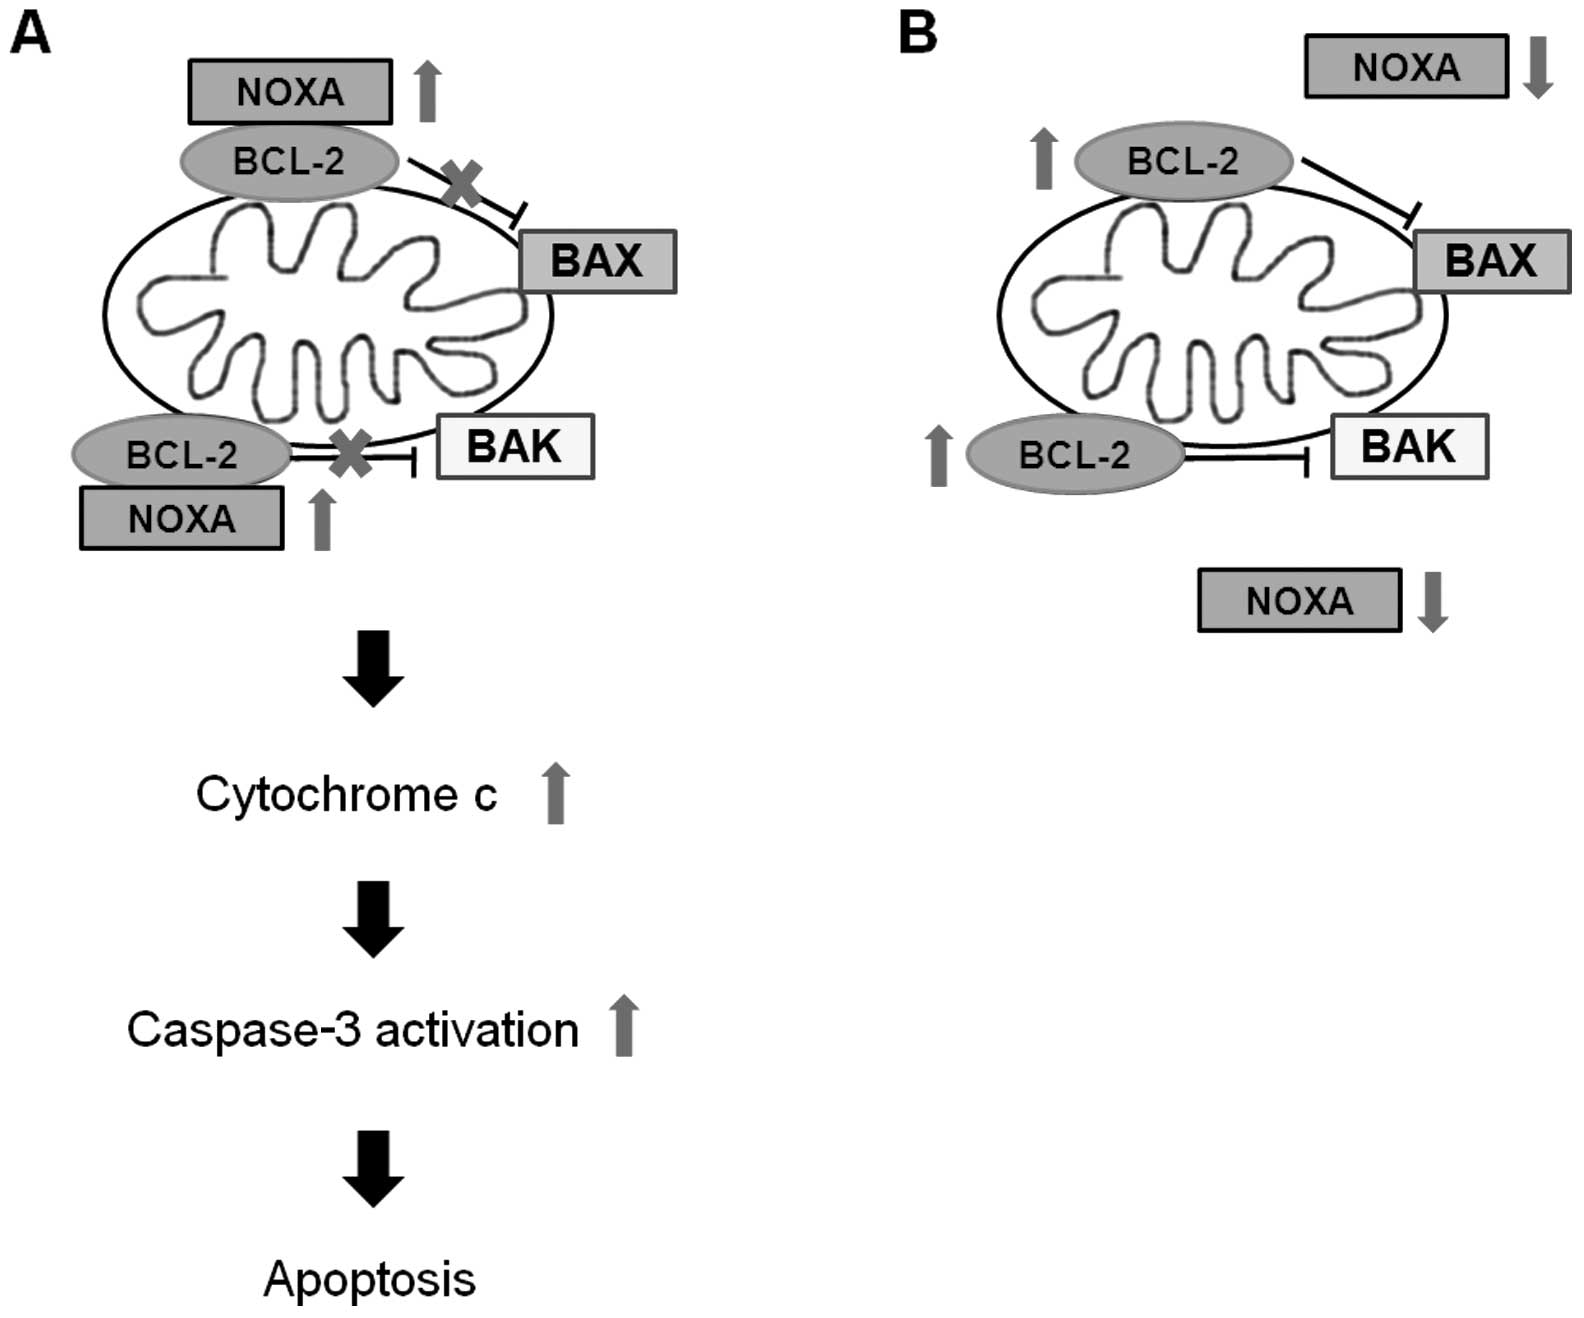 effects of the monoamine oxidase inhibitors pargyline and